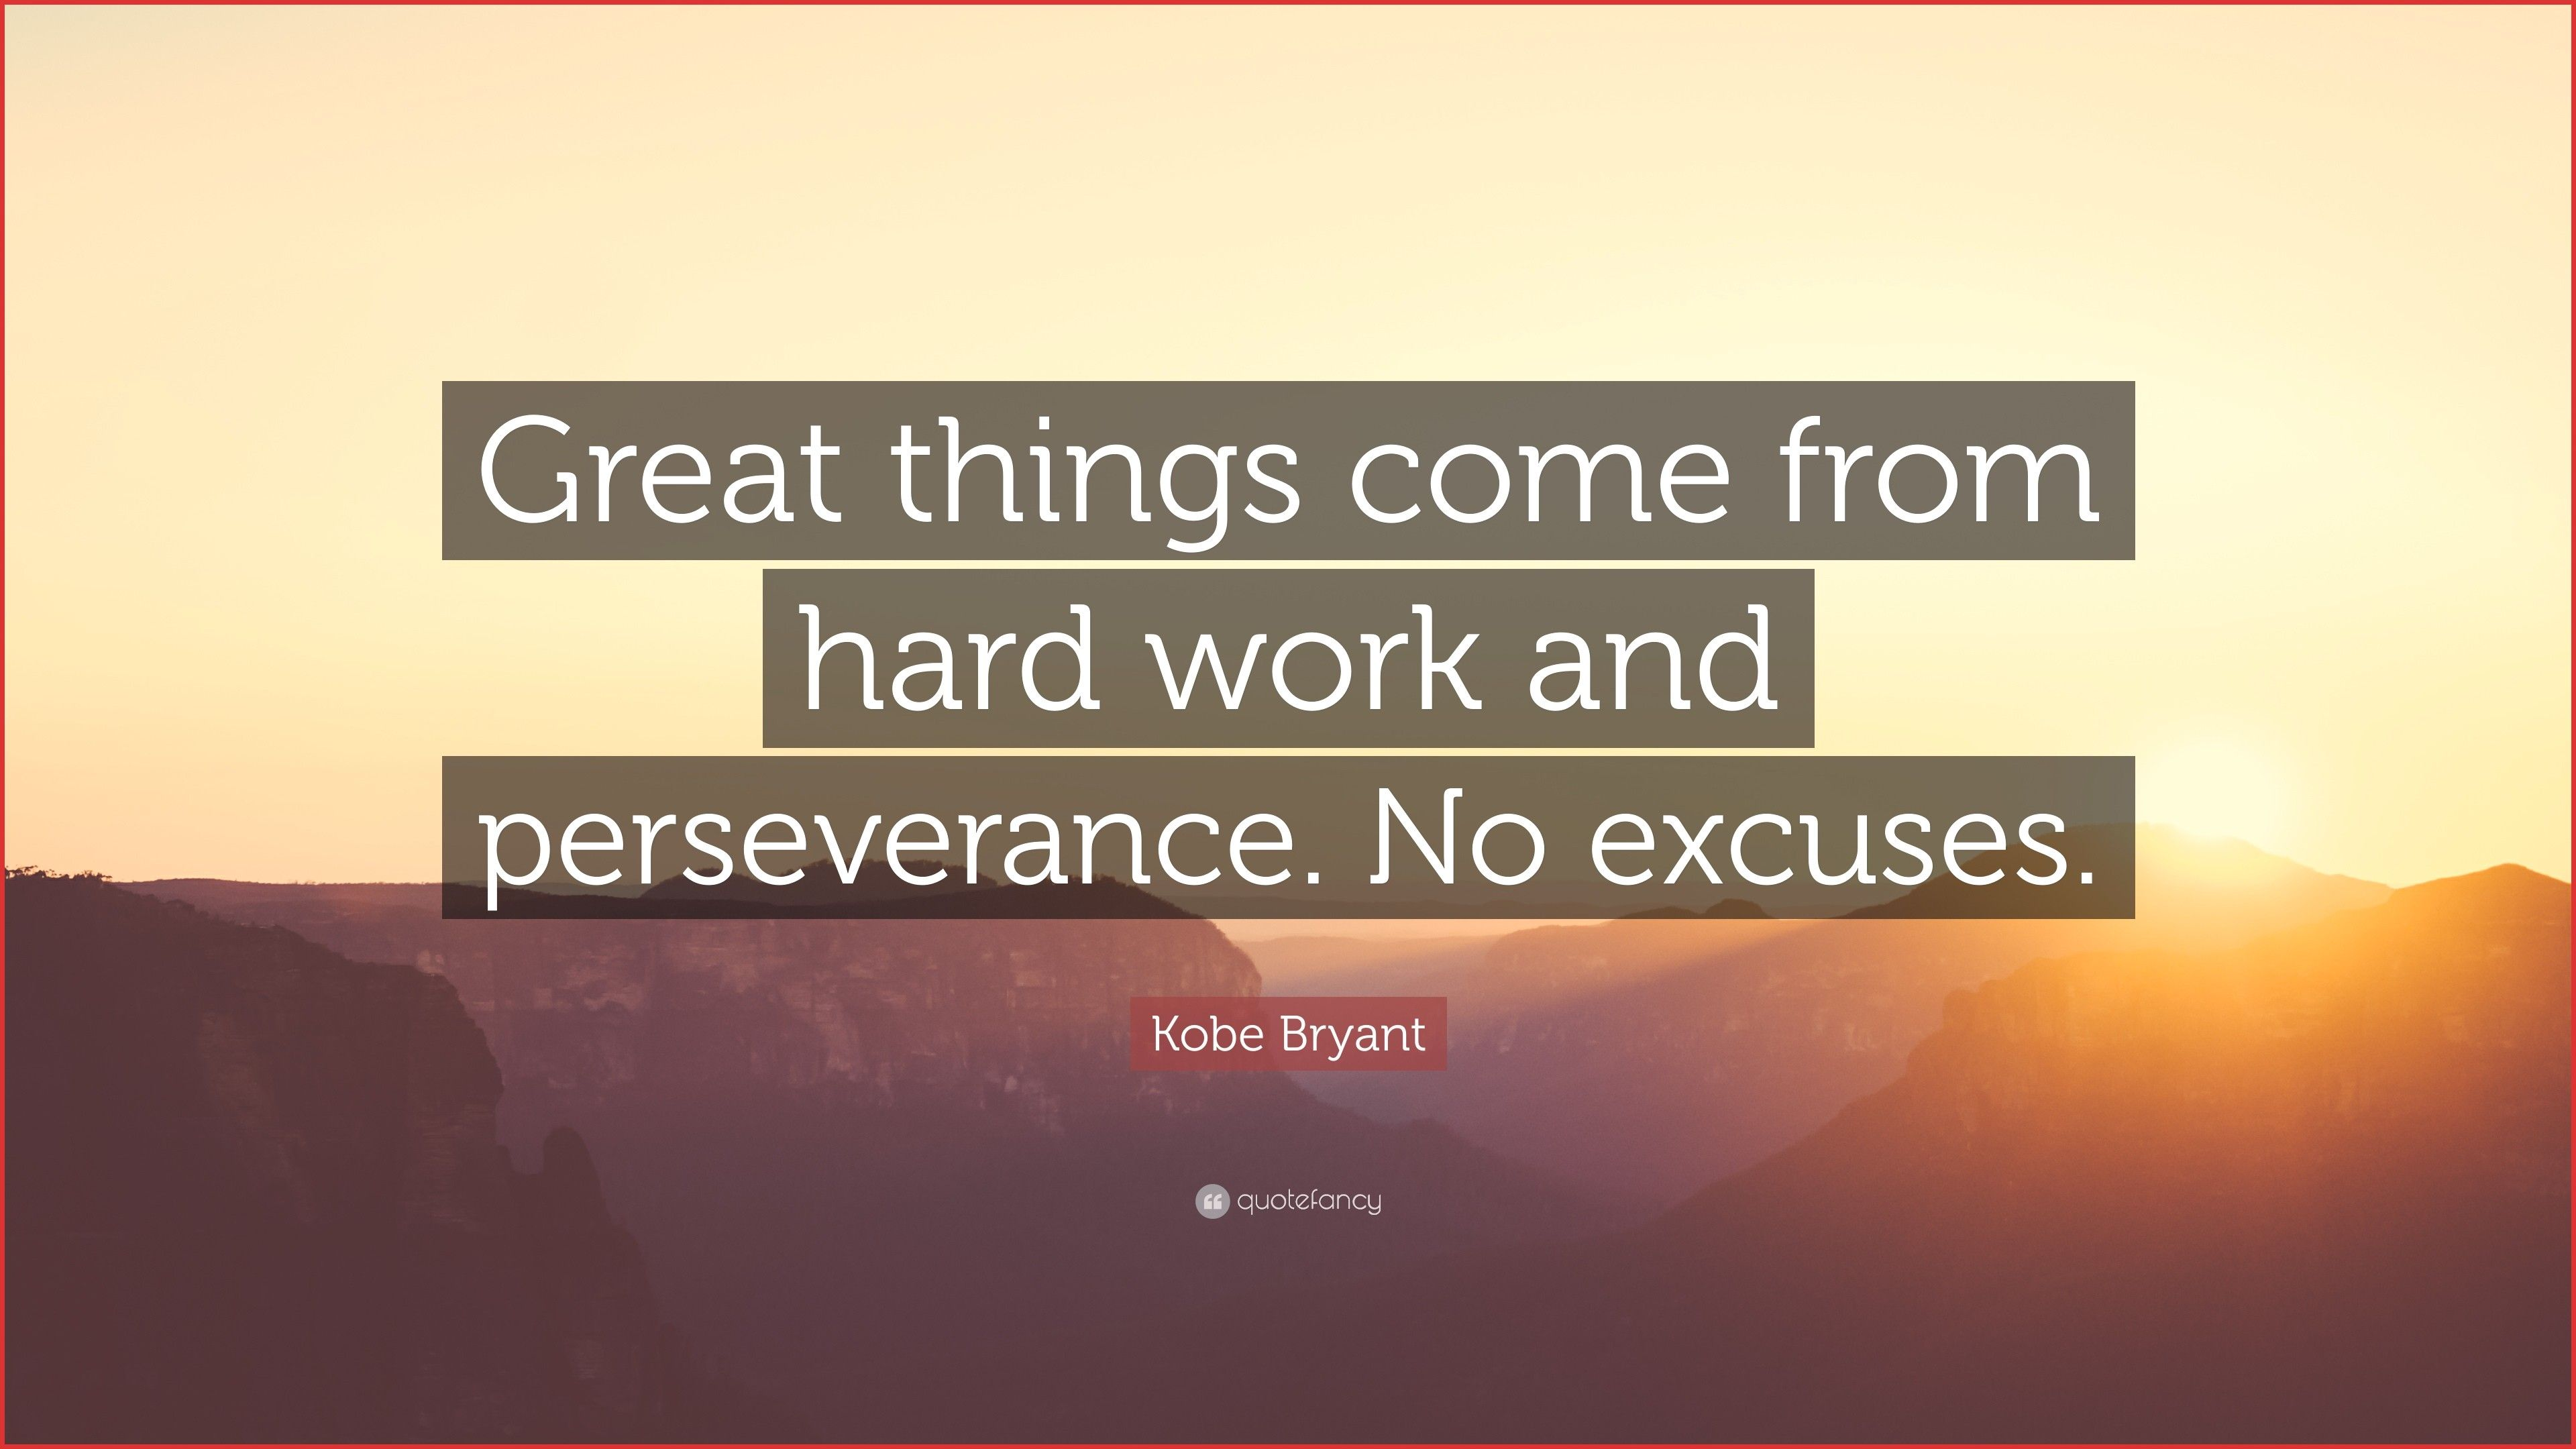 Image Result For Hard Work Quotes Hard Work Status 24 Hard Work Quotes Work Quotes Work Status